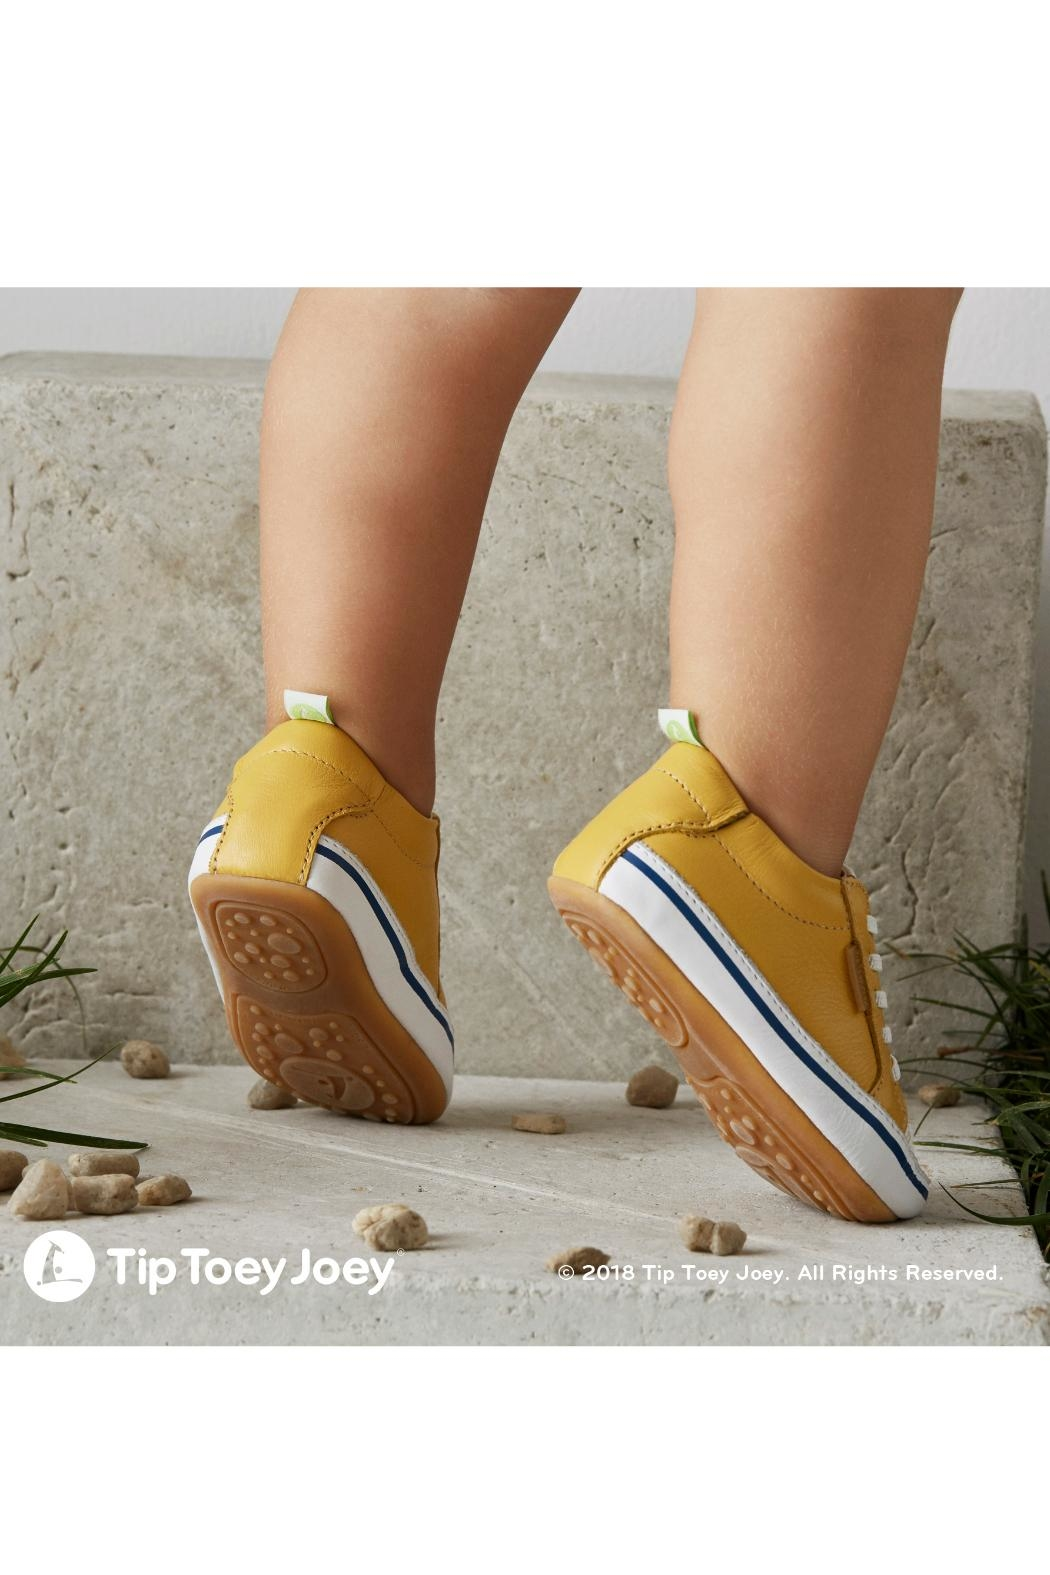 Tip Toey Joey Funky Yellow Sneakers - Front Full Image